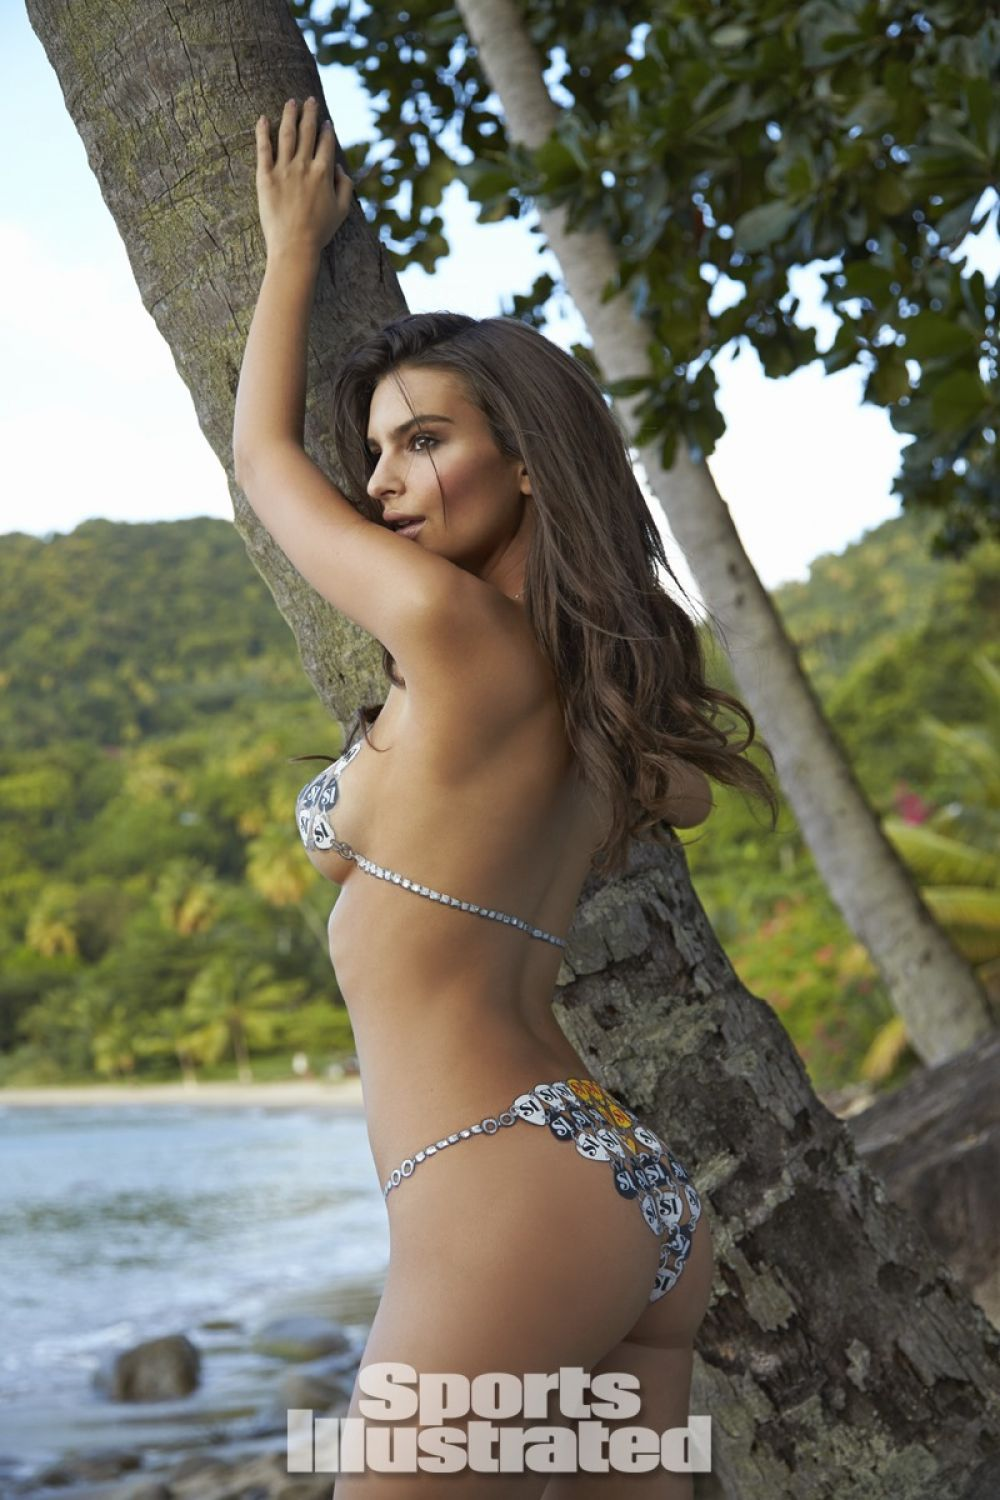 emily-ratajkowski-in-sports-illustrated-2014-swimsuit-issue_11.jpg - 176.86 KB